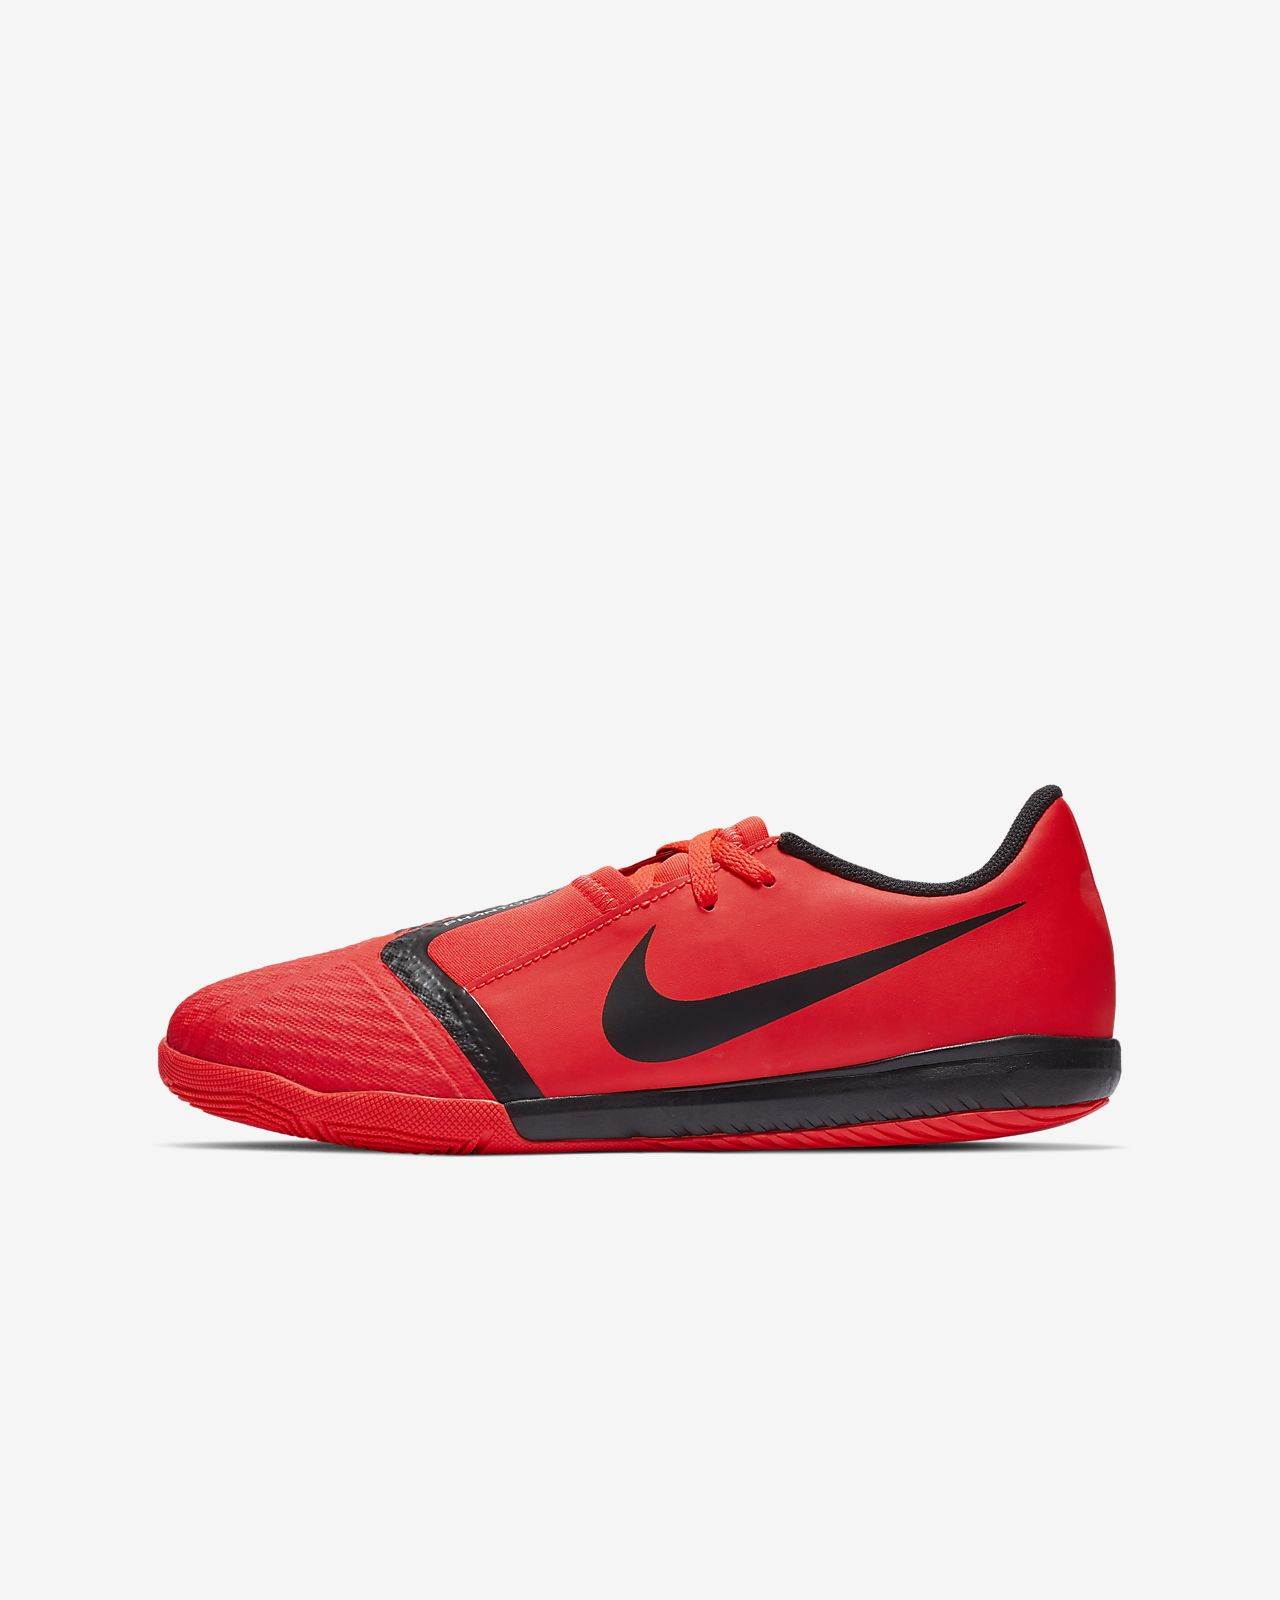 b96249973 ... Indoor Court Football Boot. Nike Jr. PhantomVNM Academy IC Game Over